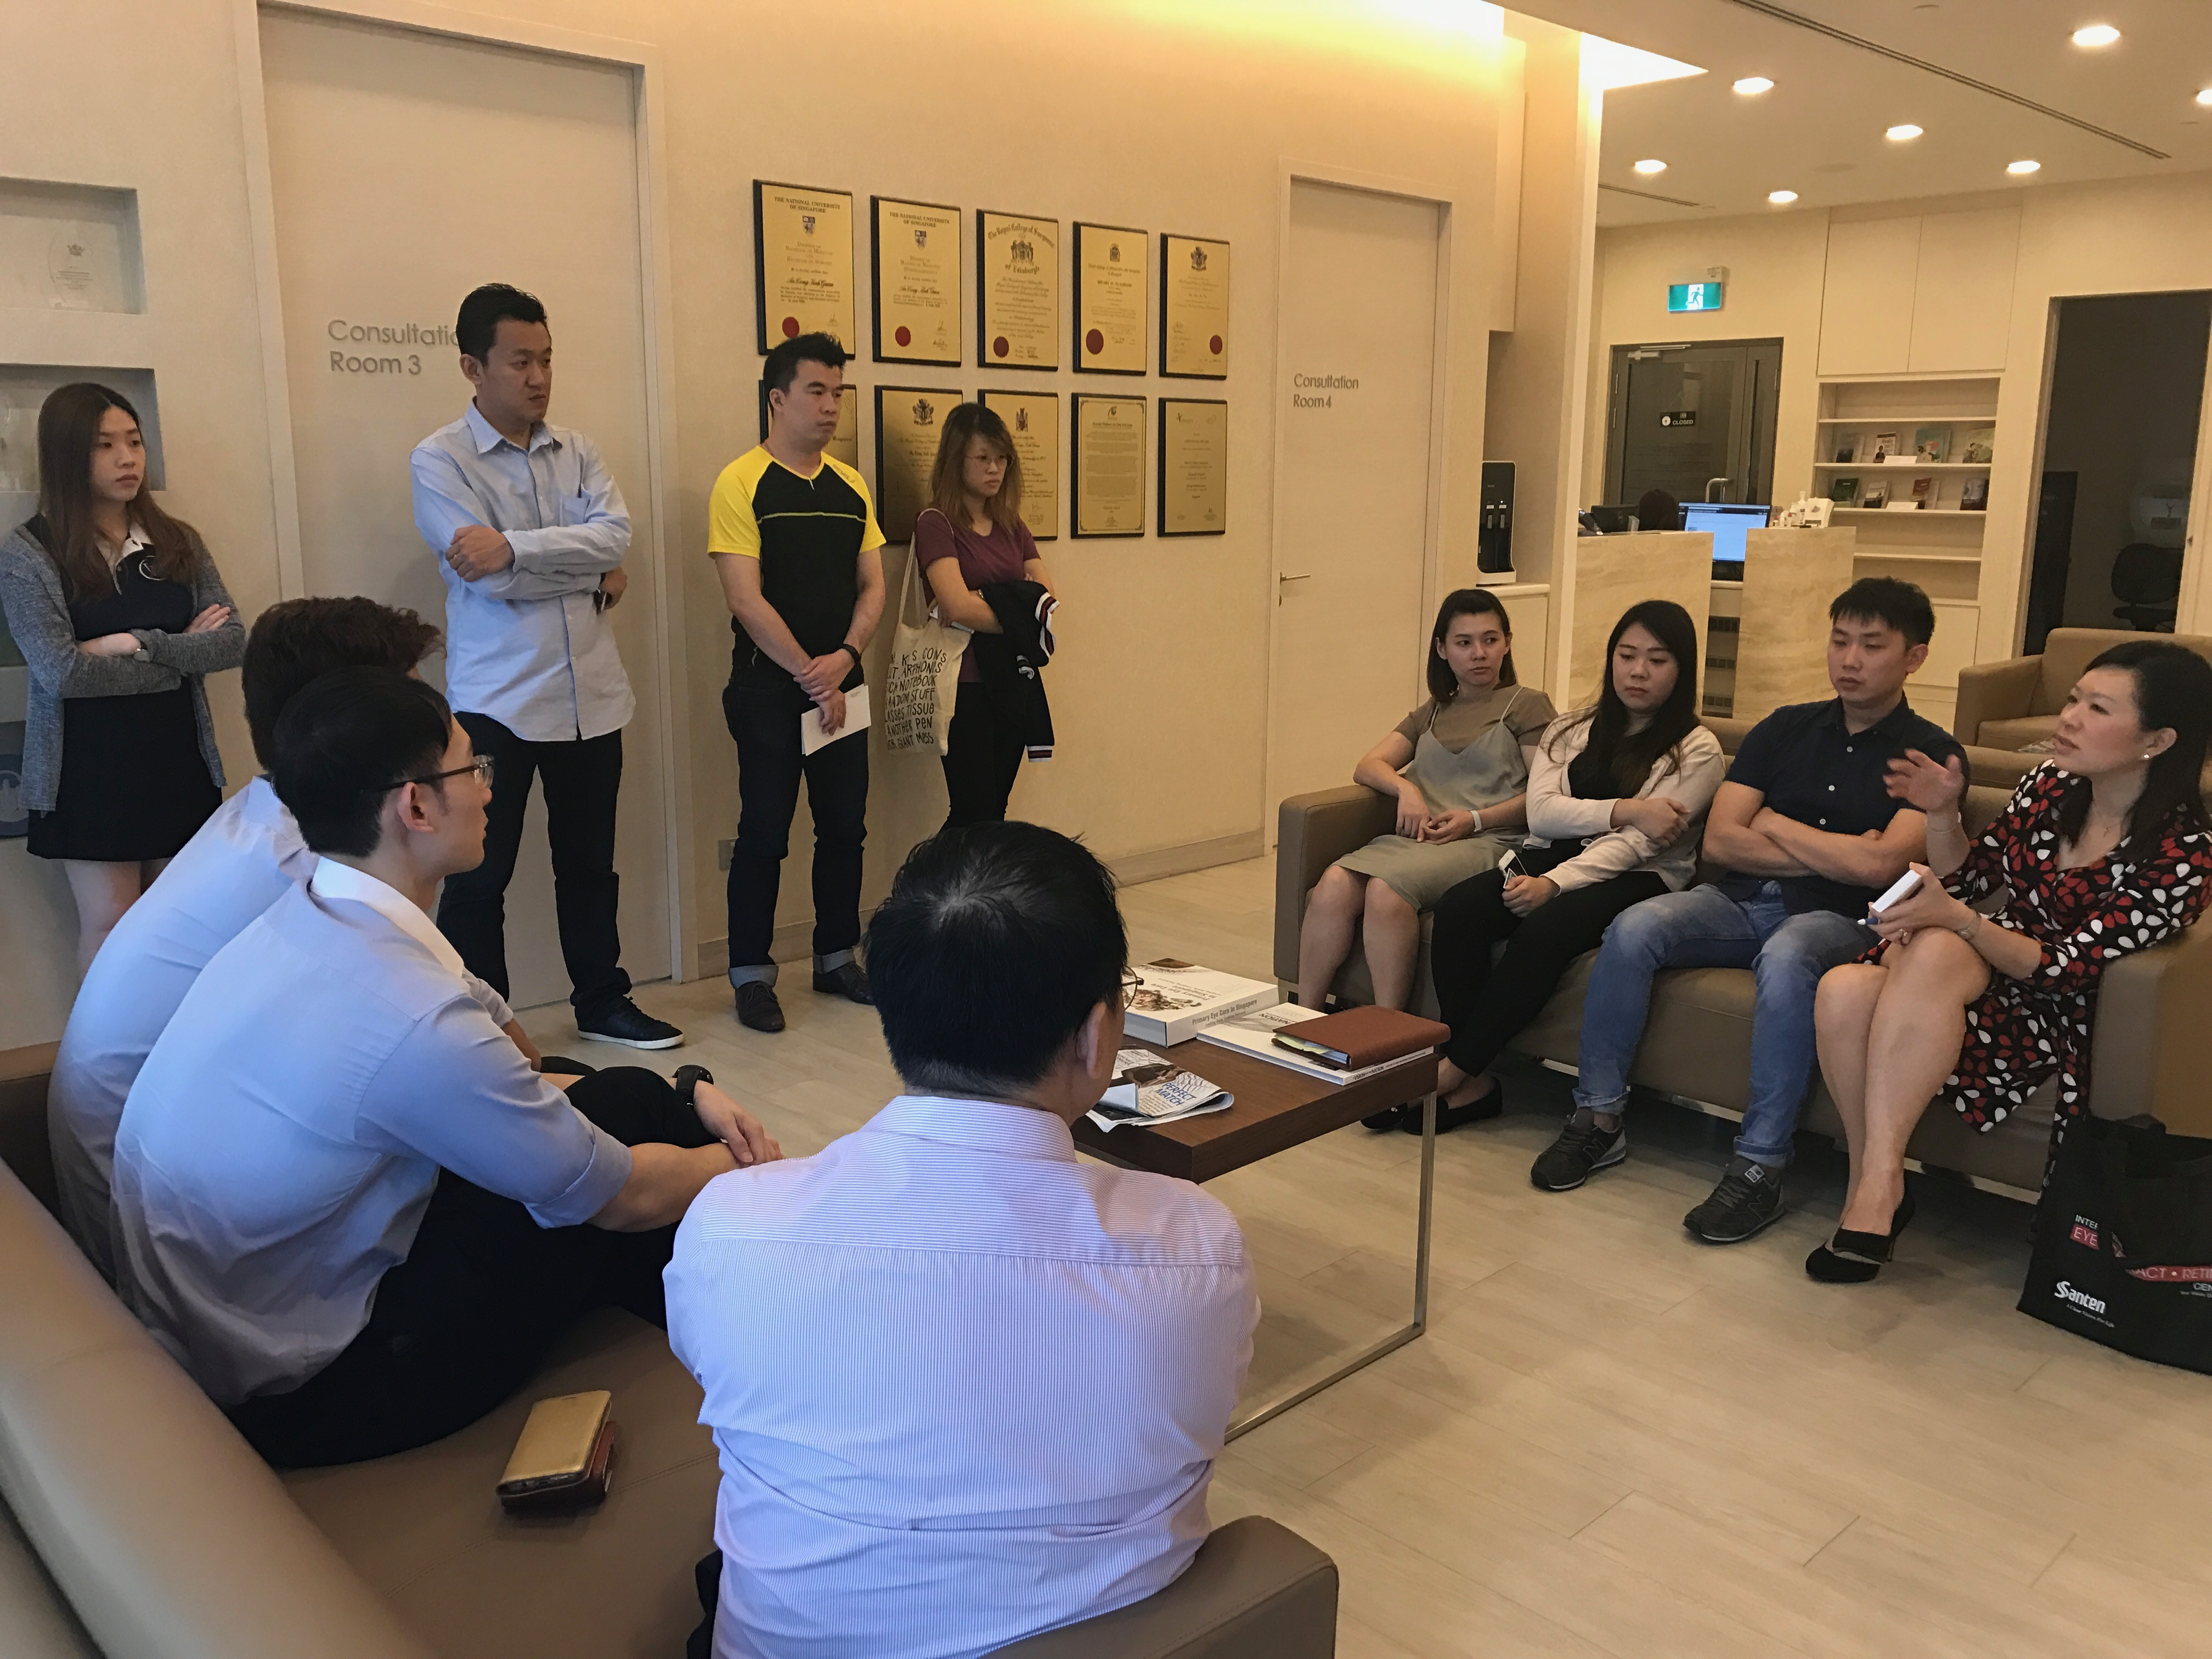 Dr Joy Chan, Medical Director & Senior Consultant from International Eye Cataract Retina Centre, sharing helpful eye care tips with optometrists and opticians from Vision Lab Eyewear on 16 August 2017.